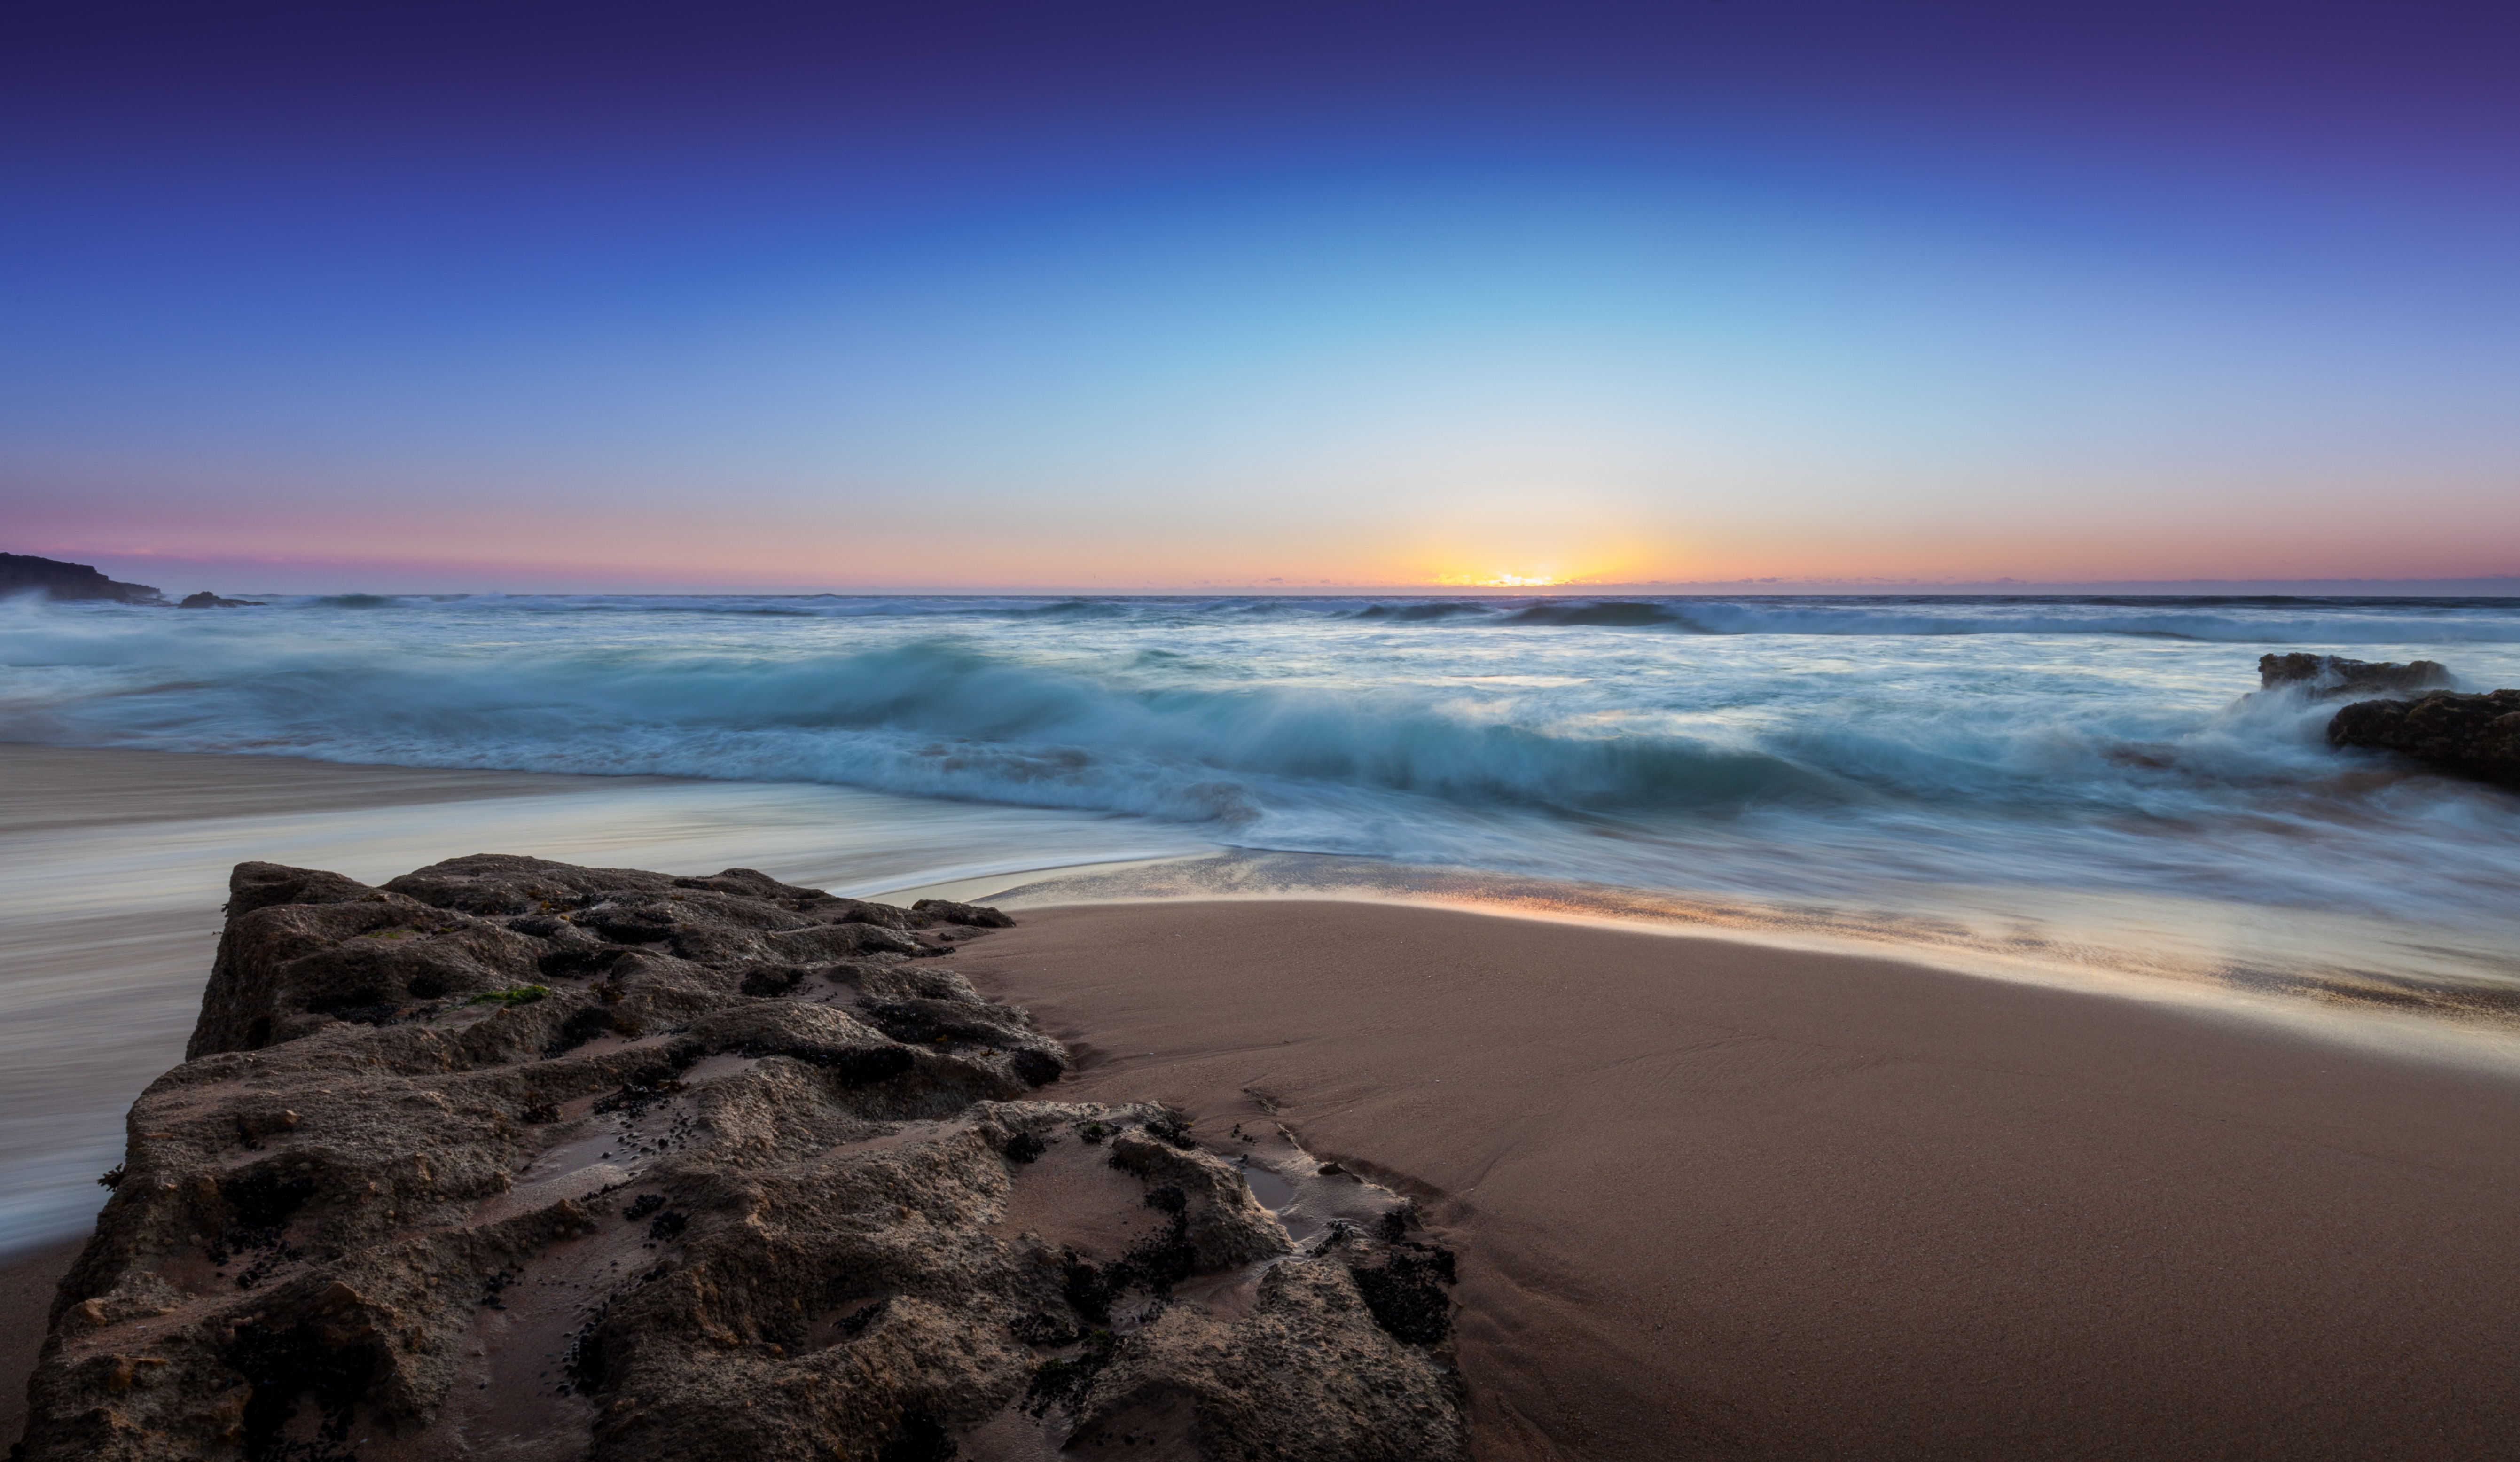 Ocean washing on the Praia do Guincho sand shore at sunset